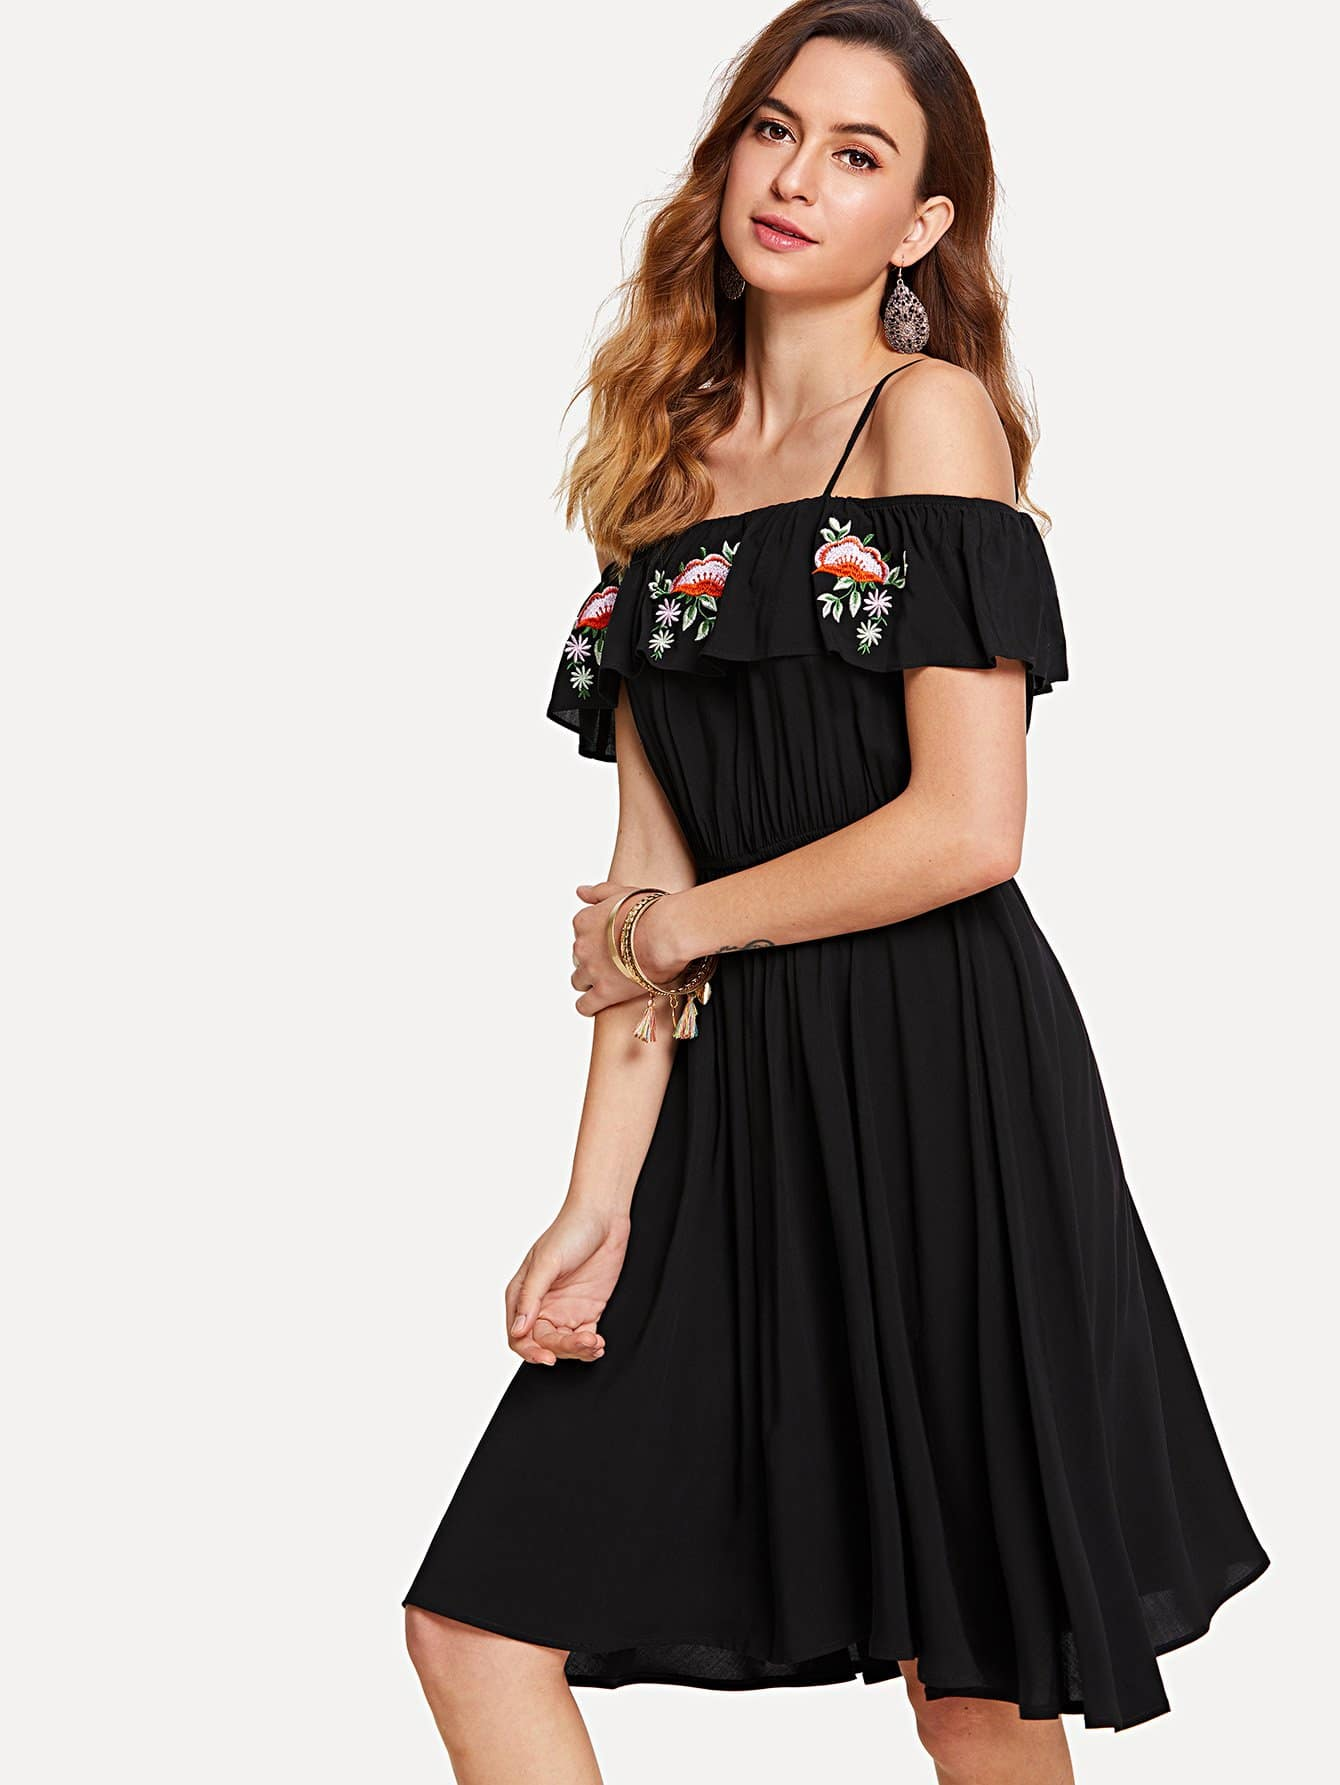 Embroidered Ruffle Layered Cami Dress ethnic embroidered black cami dress for women